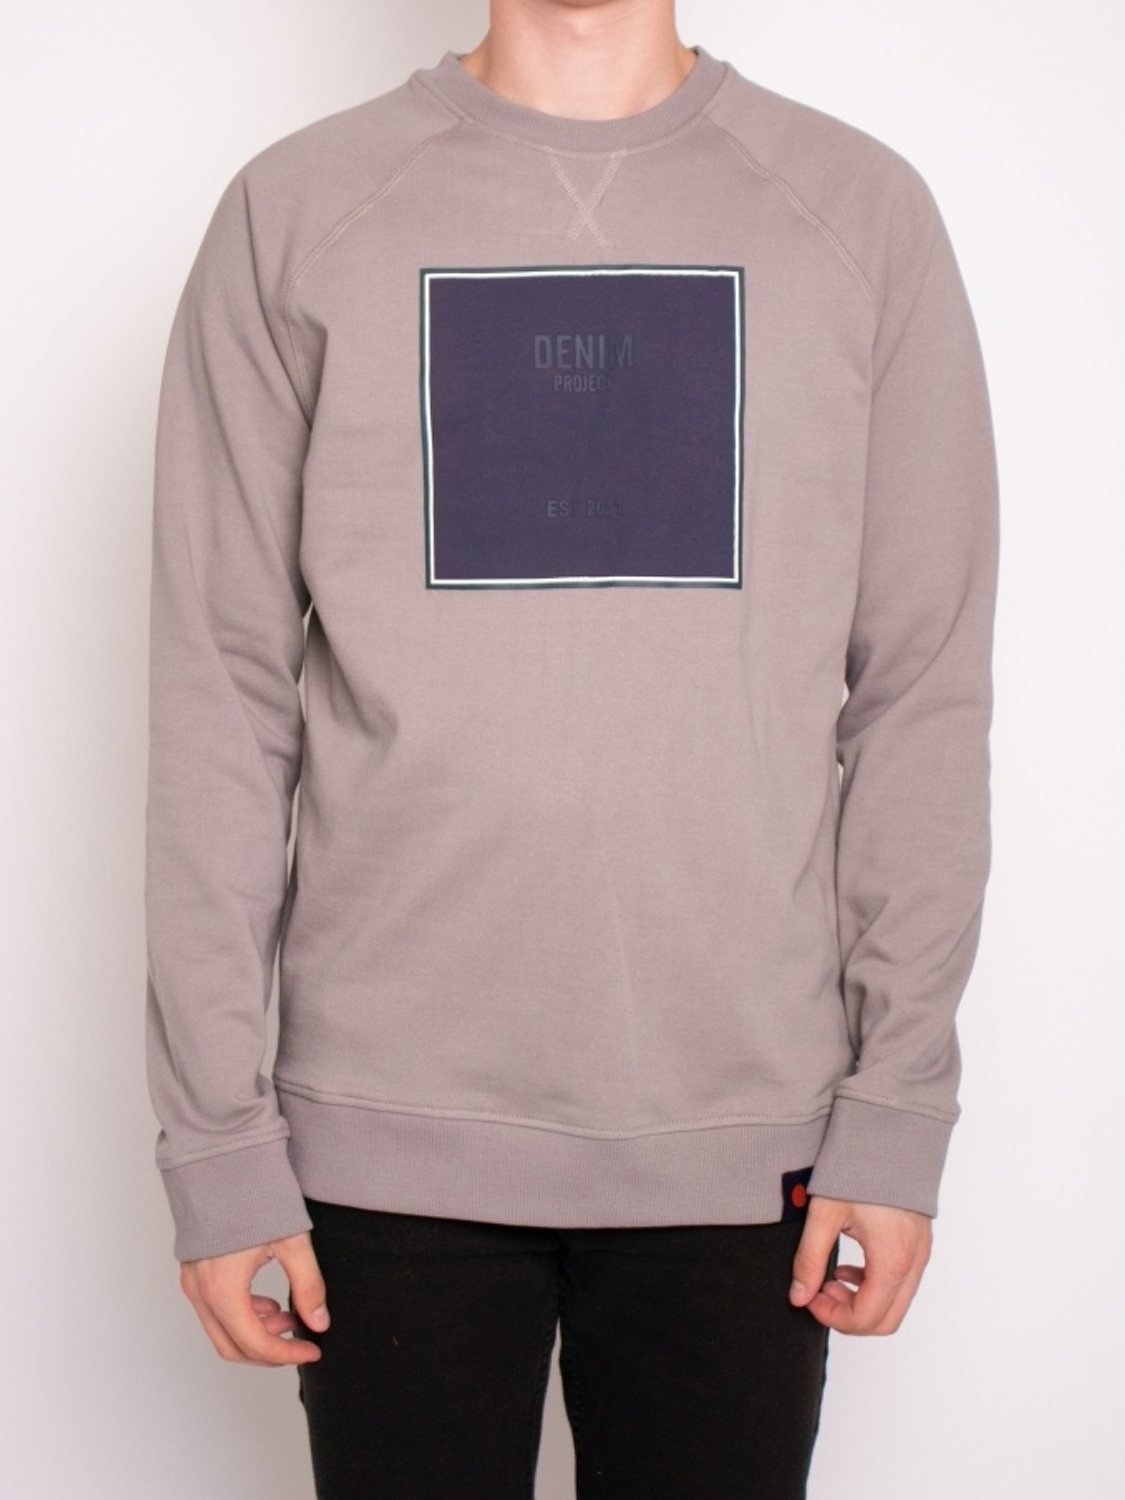 DENIM PROJECT - Sweatshirt Grey Logo | GATE 36 Hobro